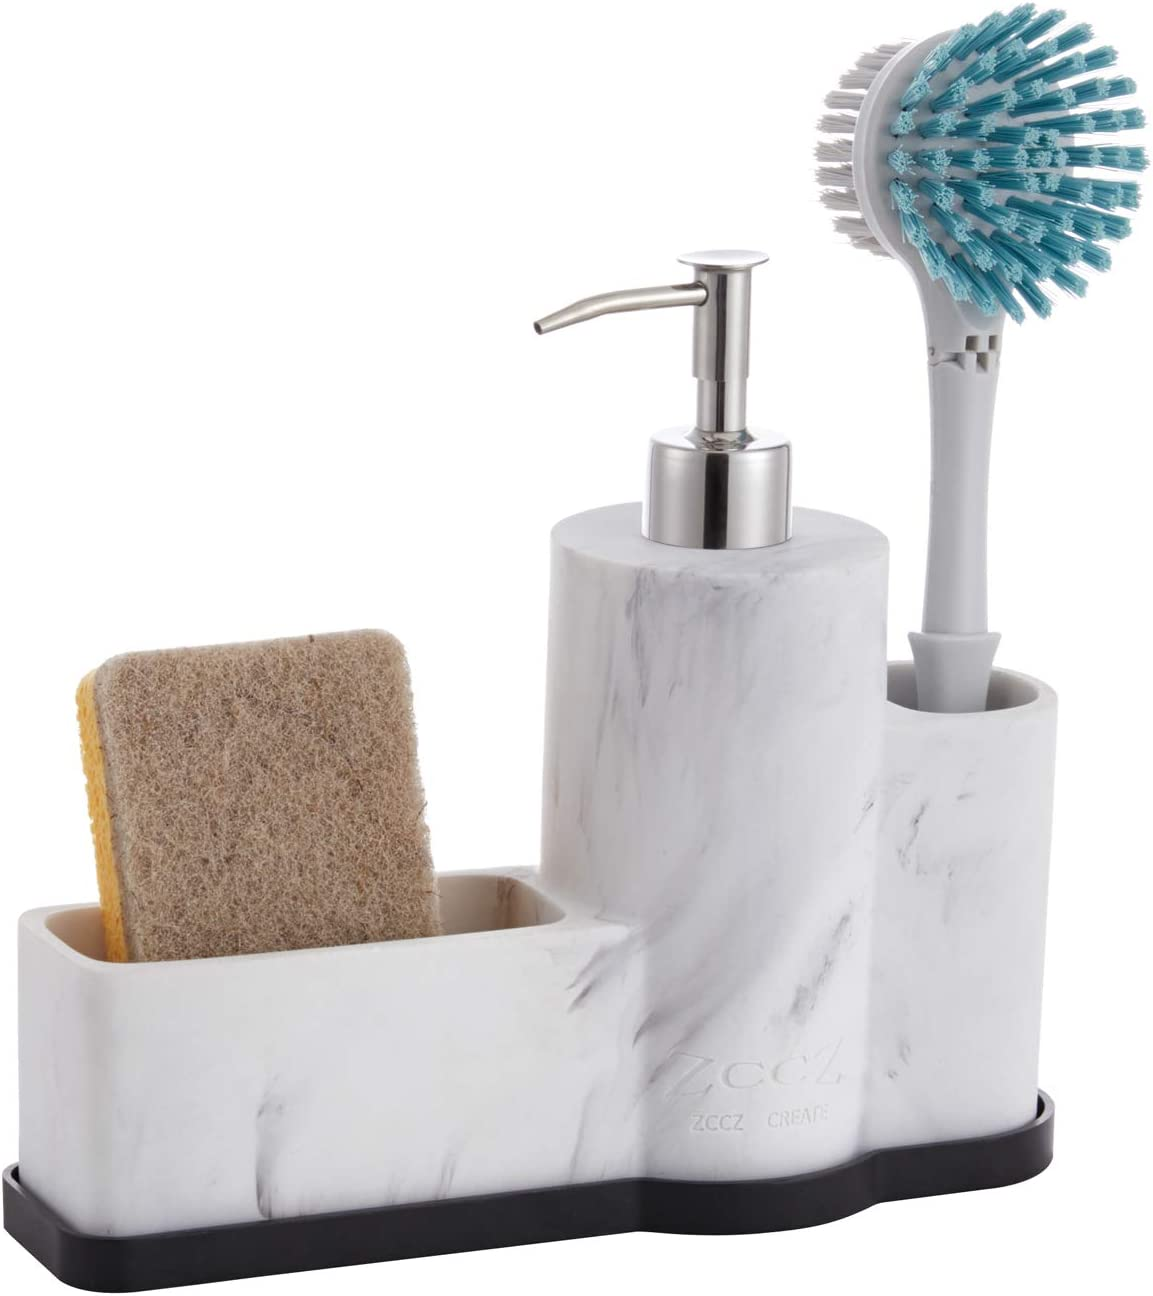 zccz Soap Dispenser with Sponge Max 40% OFF Brush and price Holder Marble